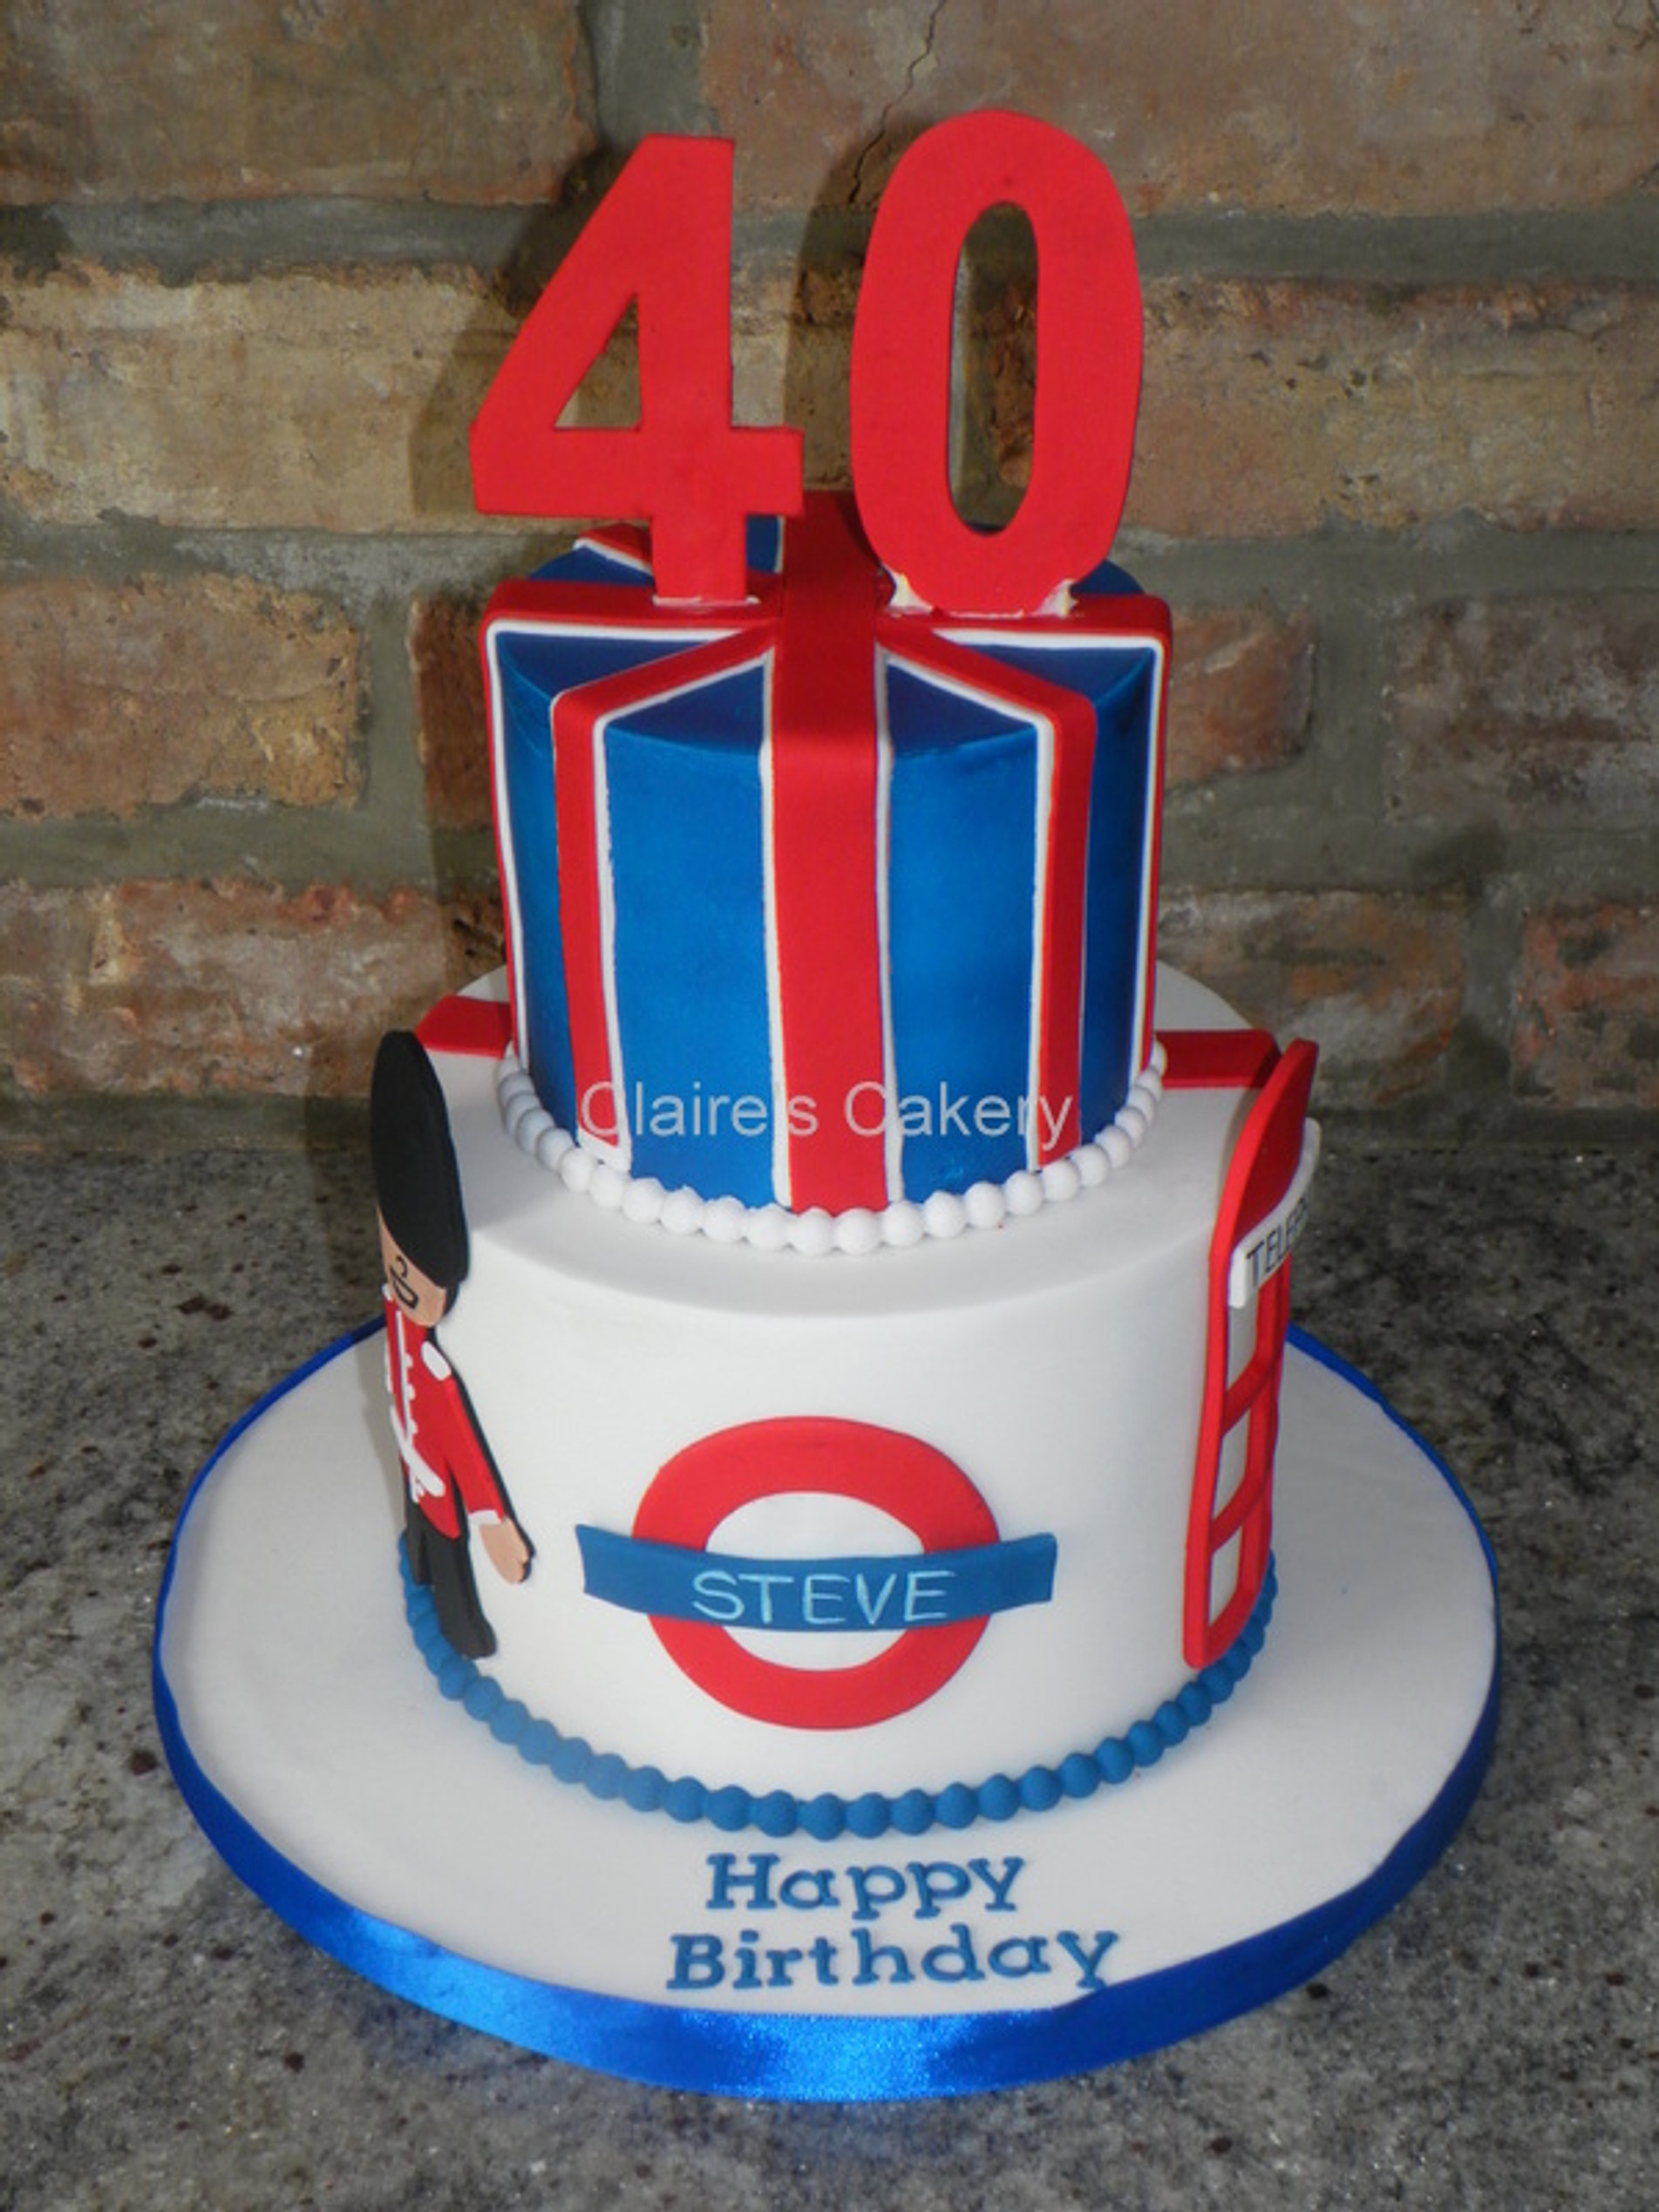 Claires Cakery cake maker in Worcester Park Celebration Cakes